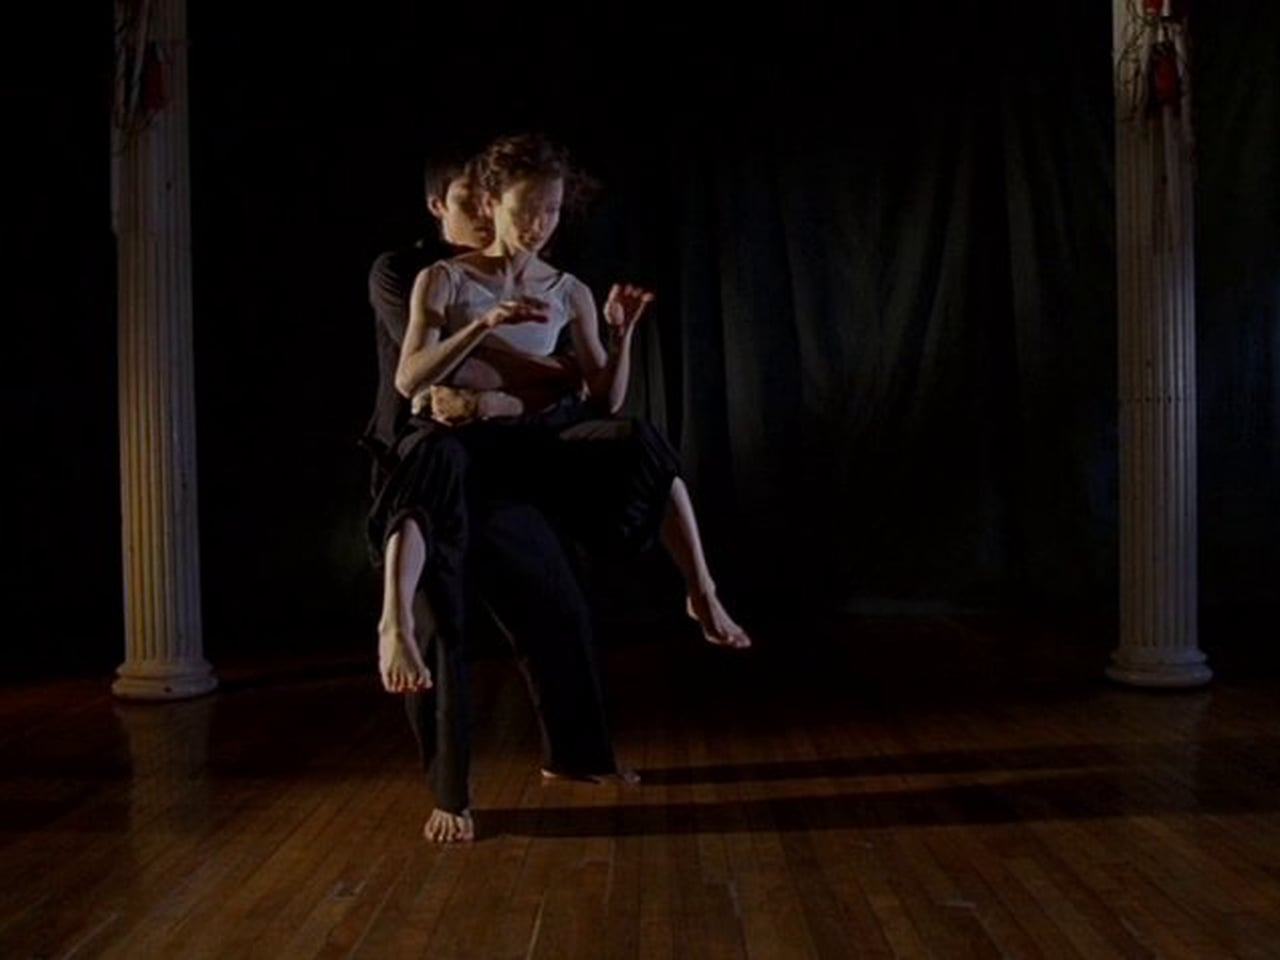 My Body in Your Hands directed by Bohdana Smyrnova